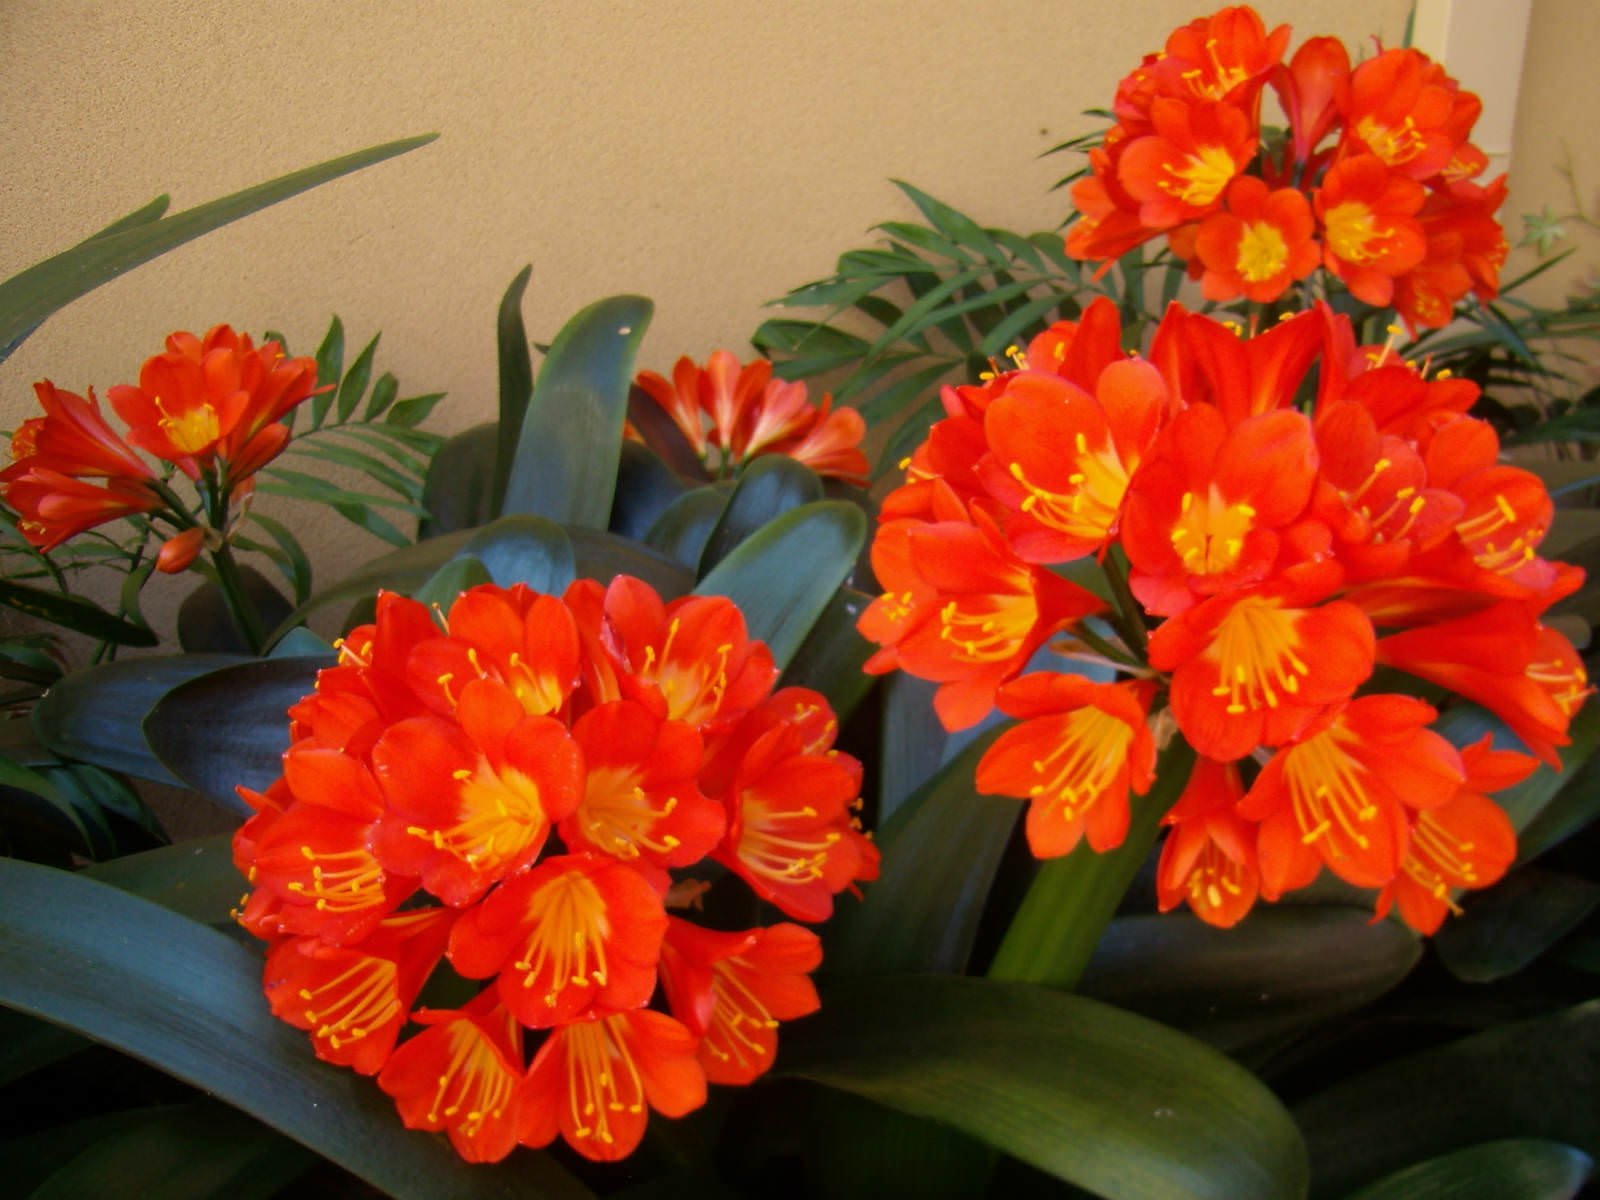 Clivia miniata kaffir lily world of flowering plants as a houseplant it usually blooms in winter with clusters of up to 20 tubular orange scarlet or pale yellow flowers with yellow throat izmirmasajfo